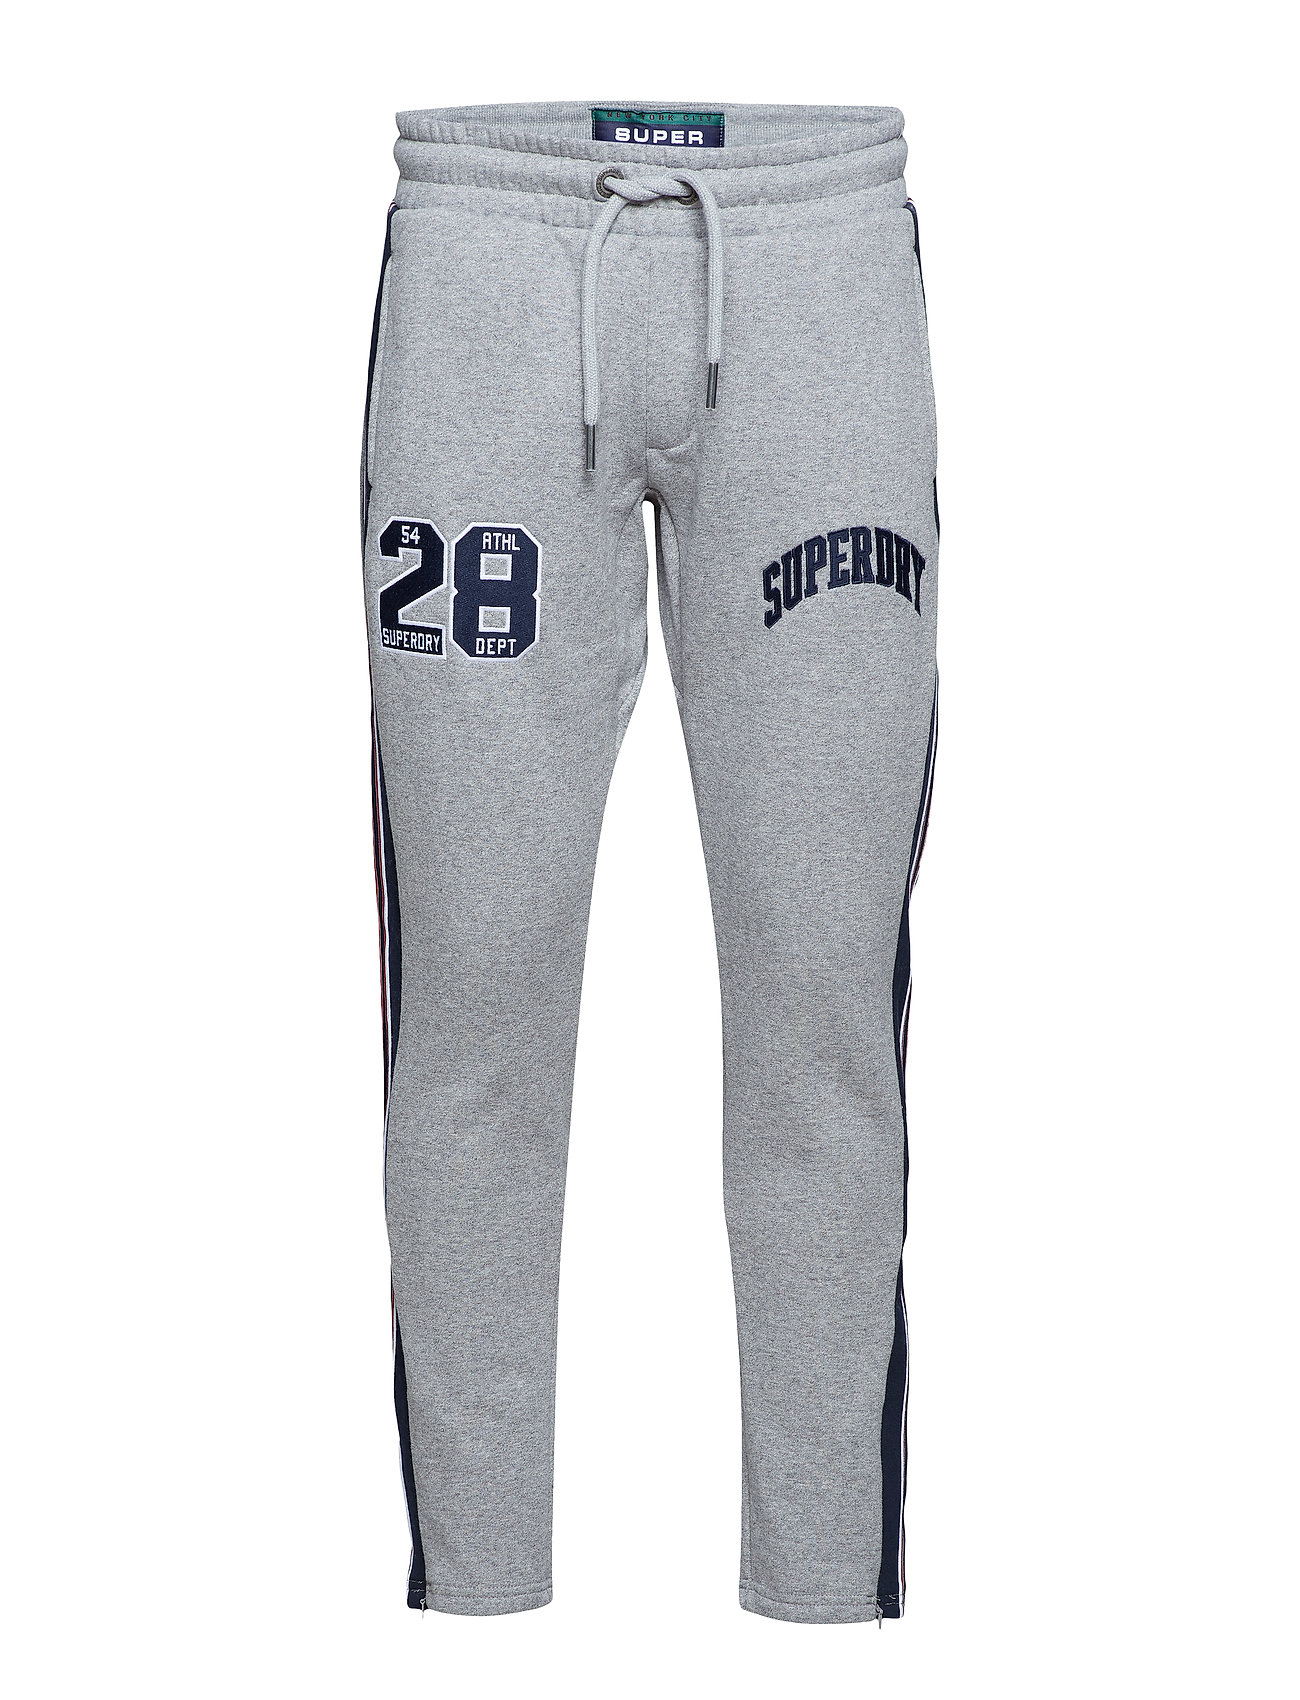 GritSuperdry Applique International Taped Joggervarsity Silver oBxerdCW